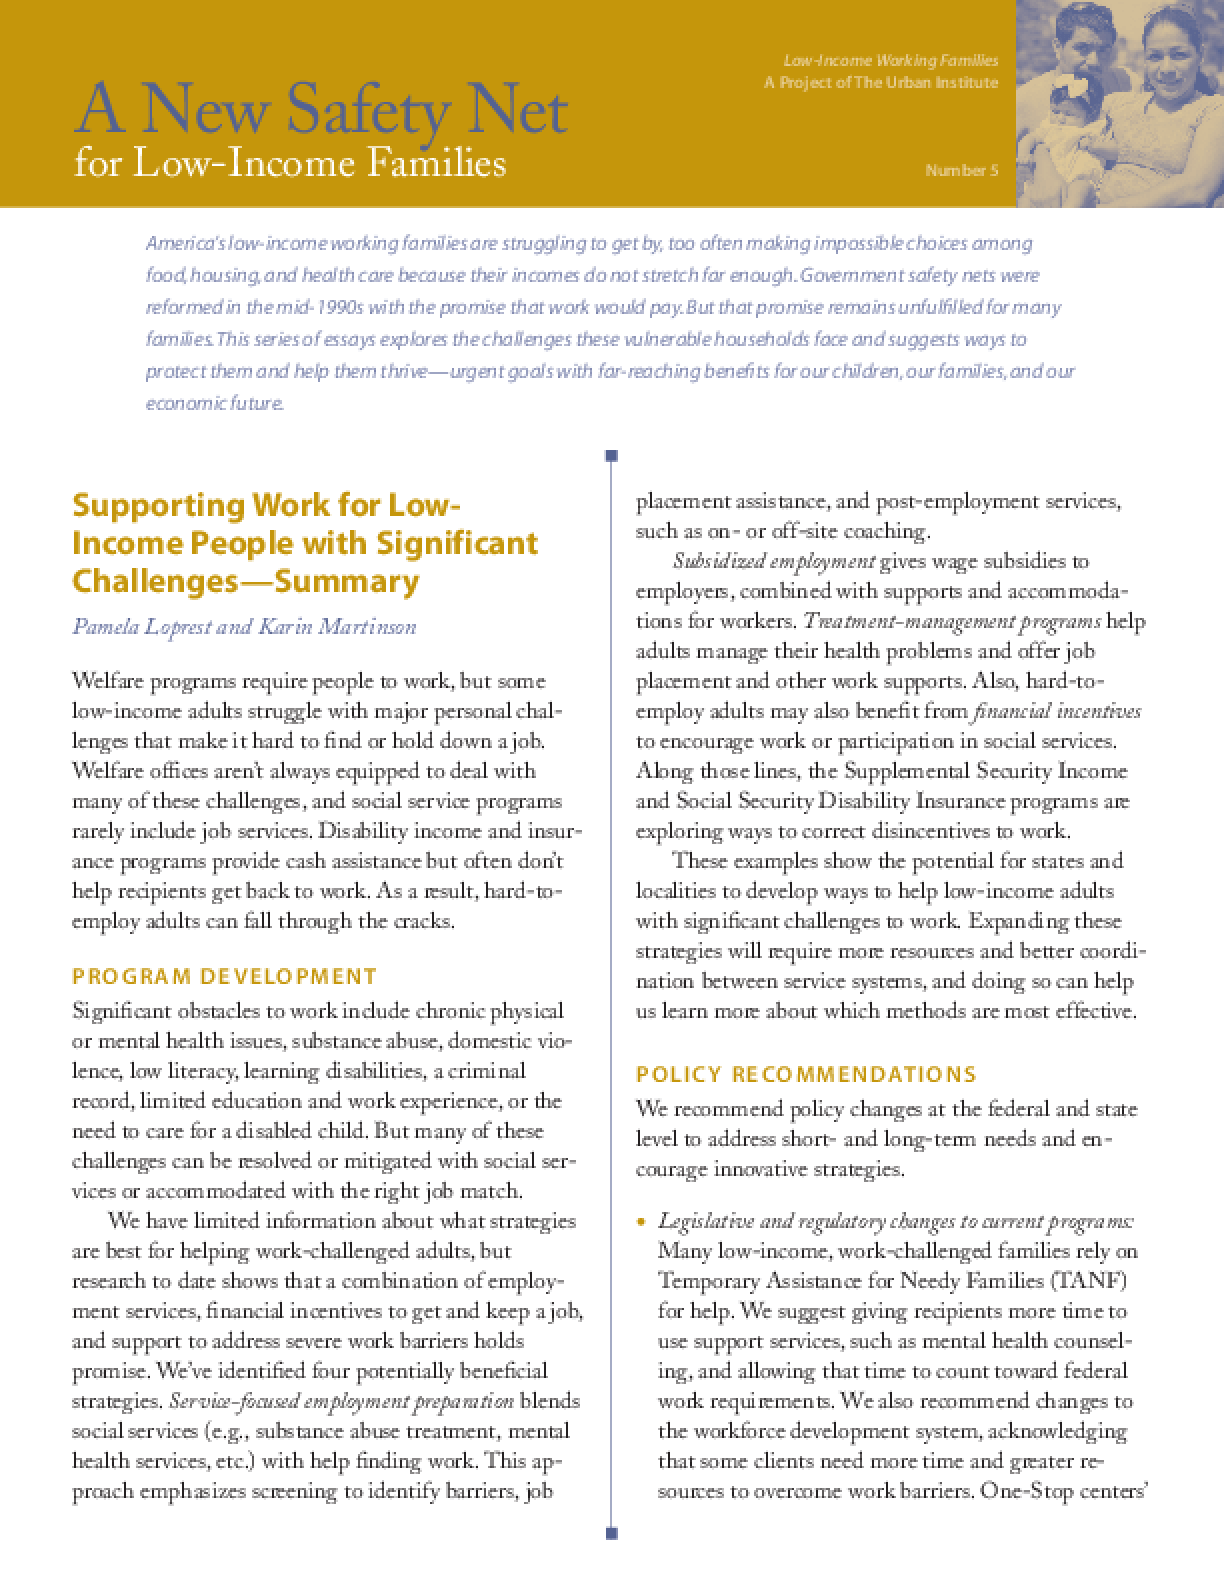 Supporting Work for Low-Income People With Significant Challenges Summary